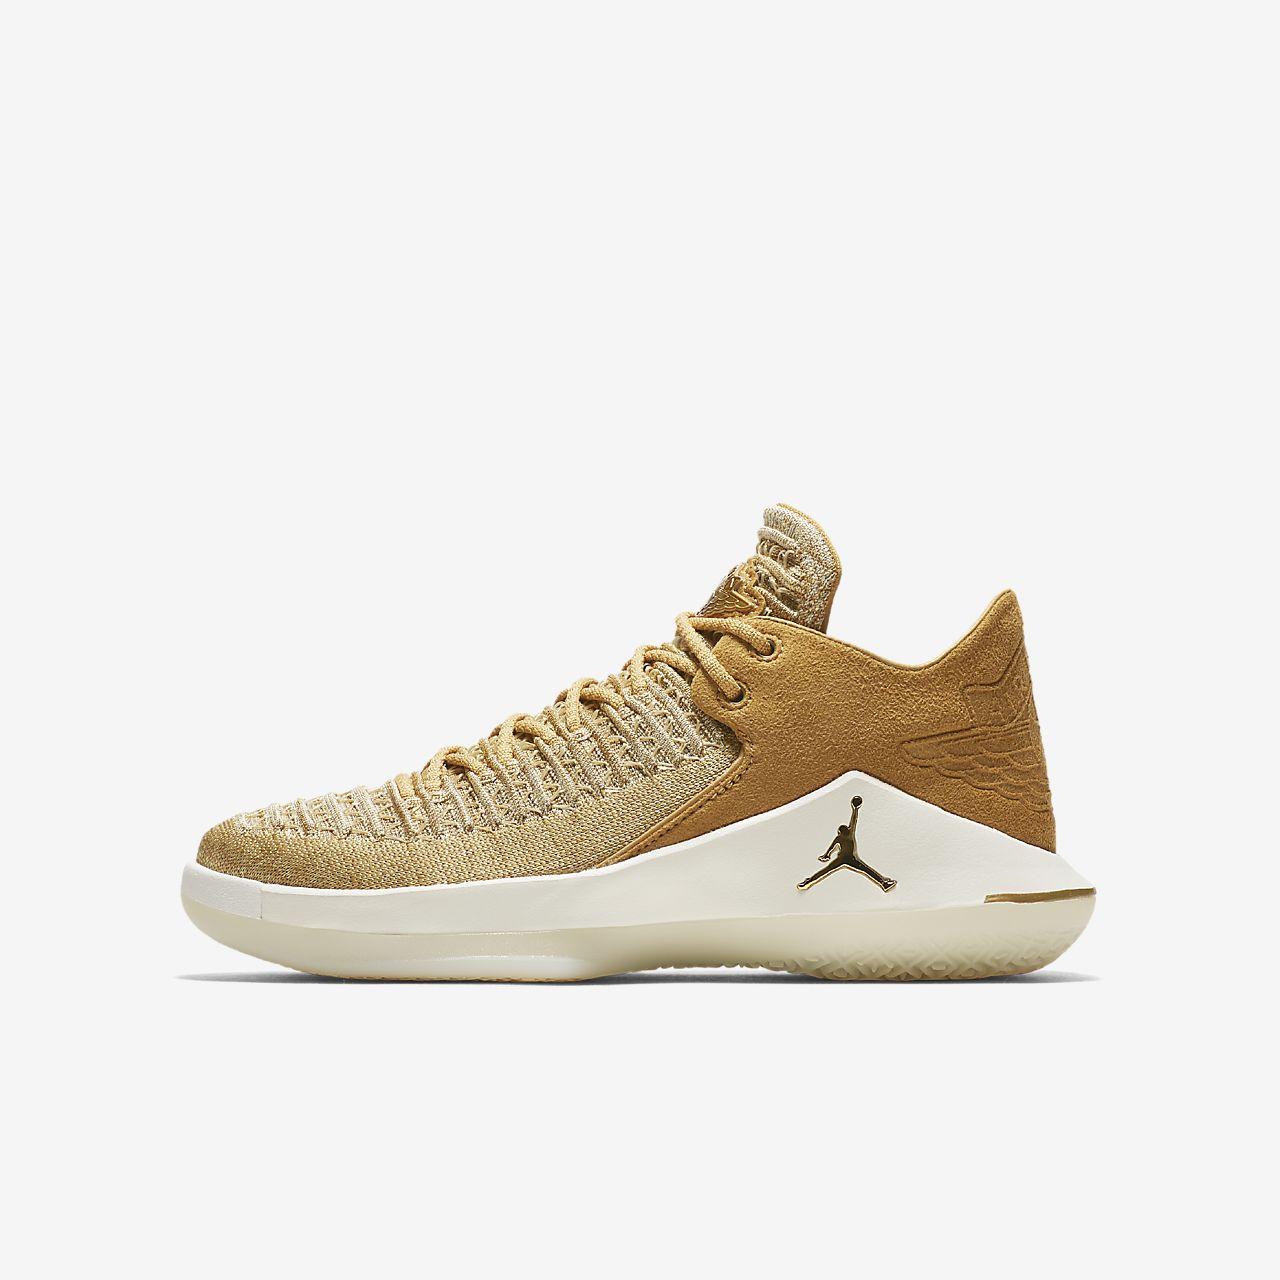 Air Jordan XXXII Low Older Kids' Basketball Shoe